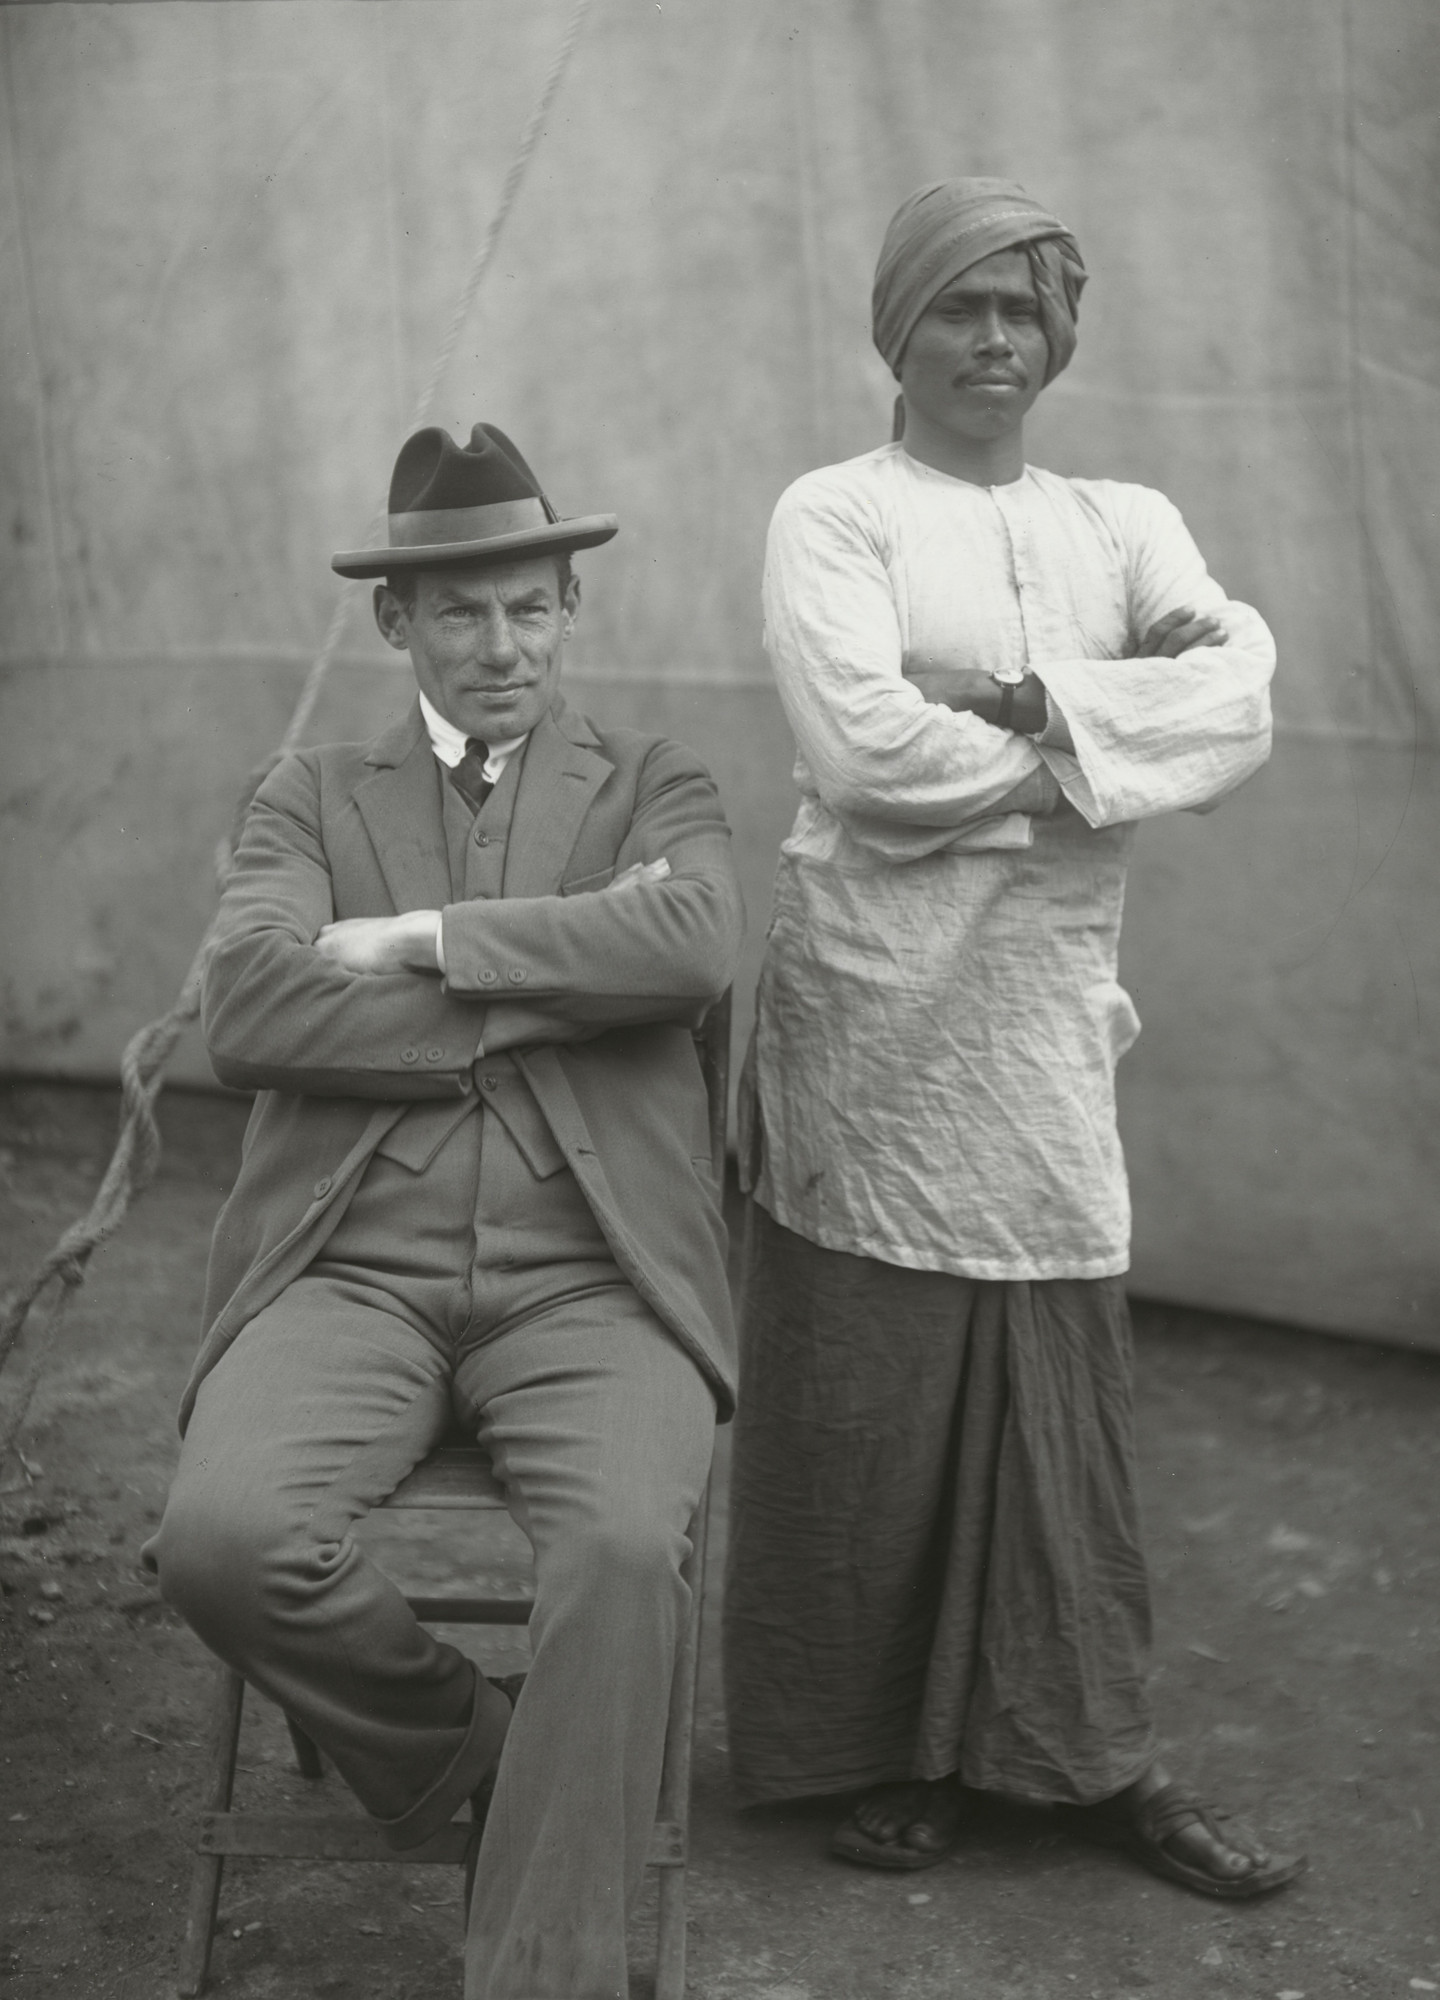 August Sander. Indian with Manager. 1930